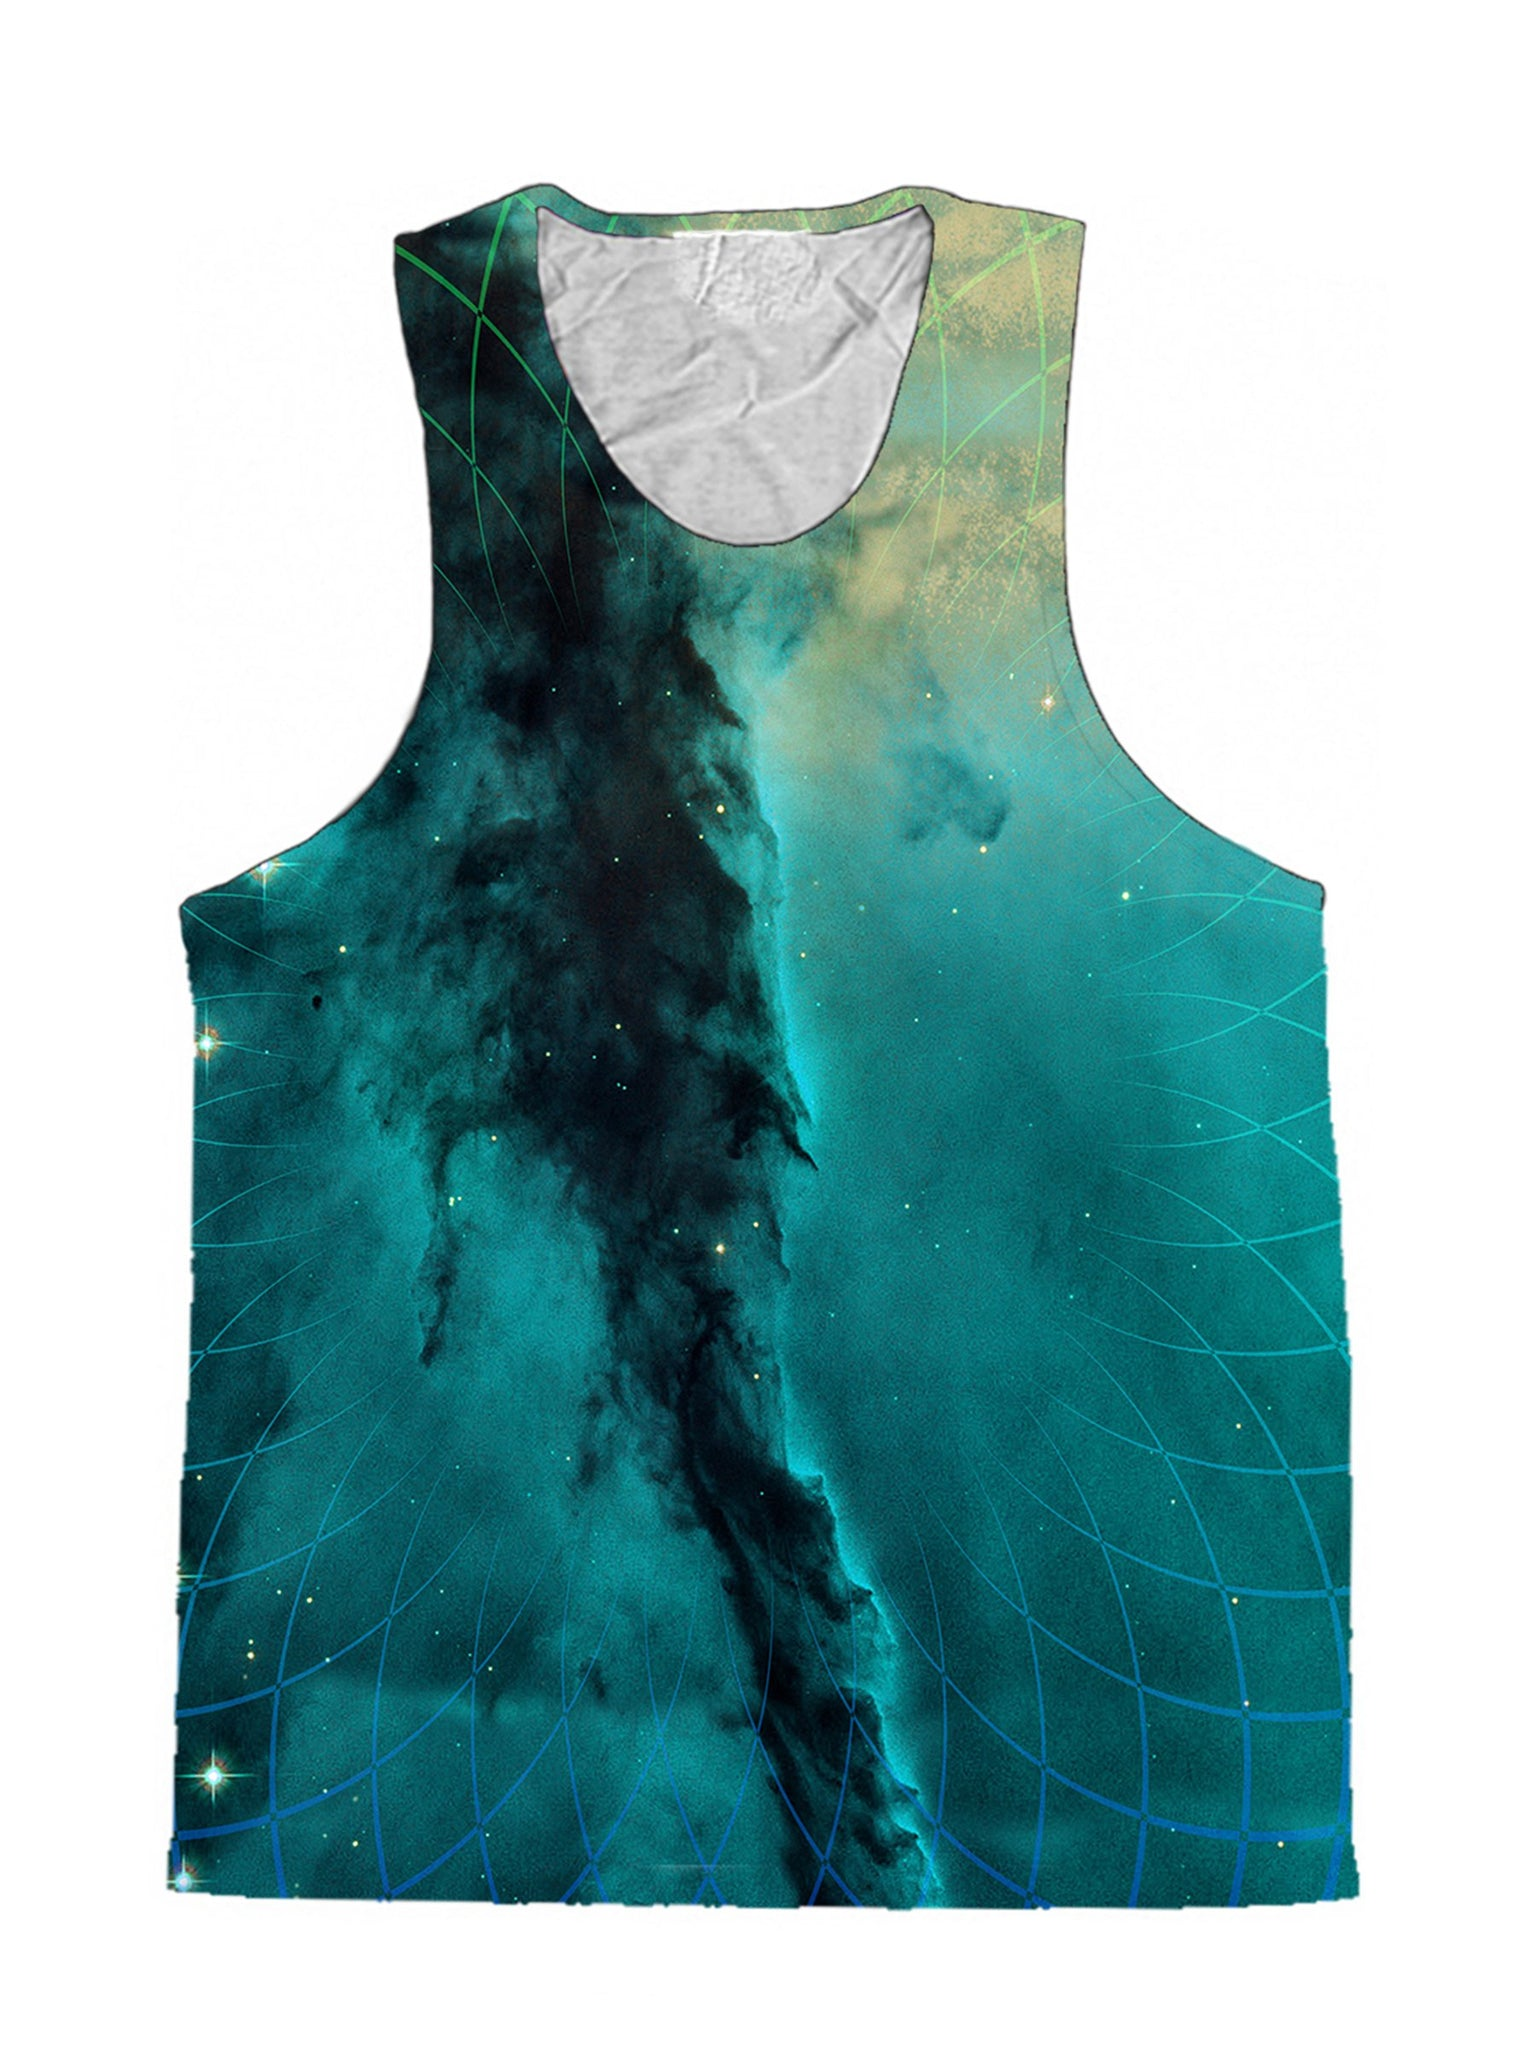 Geometric Cloud Cluster Premium Tank Top